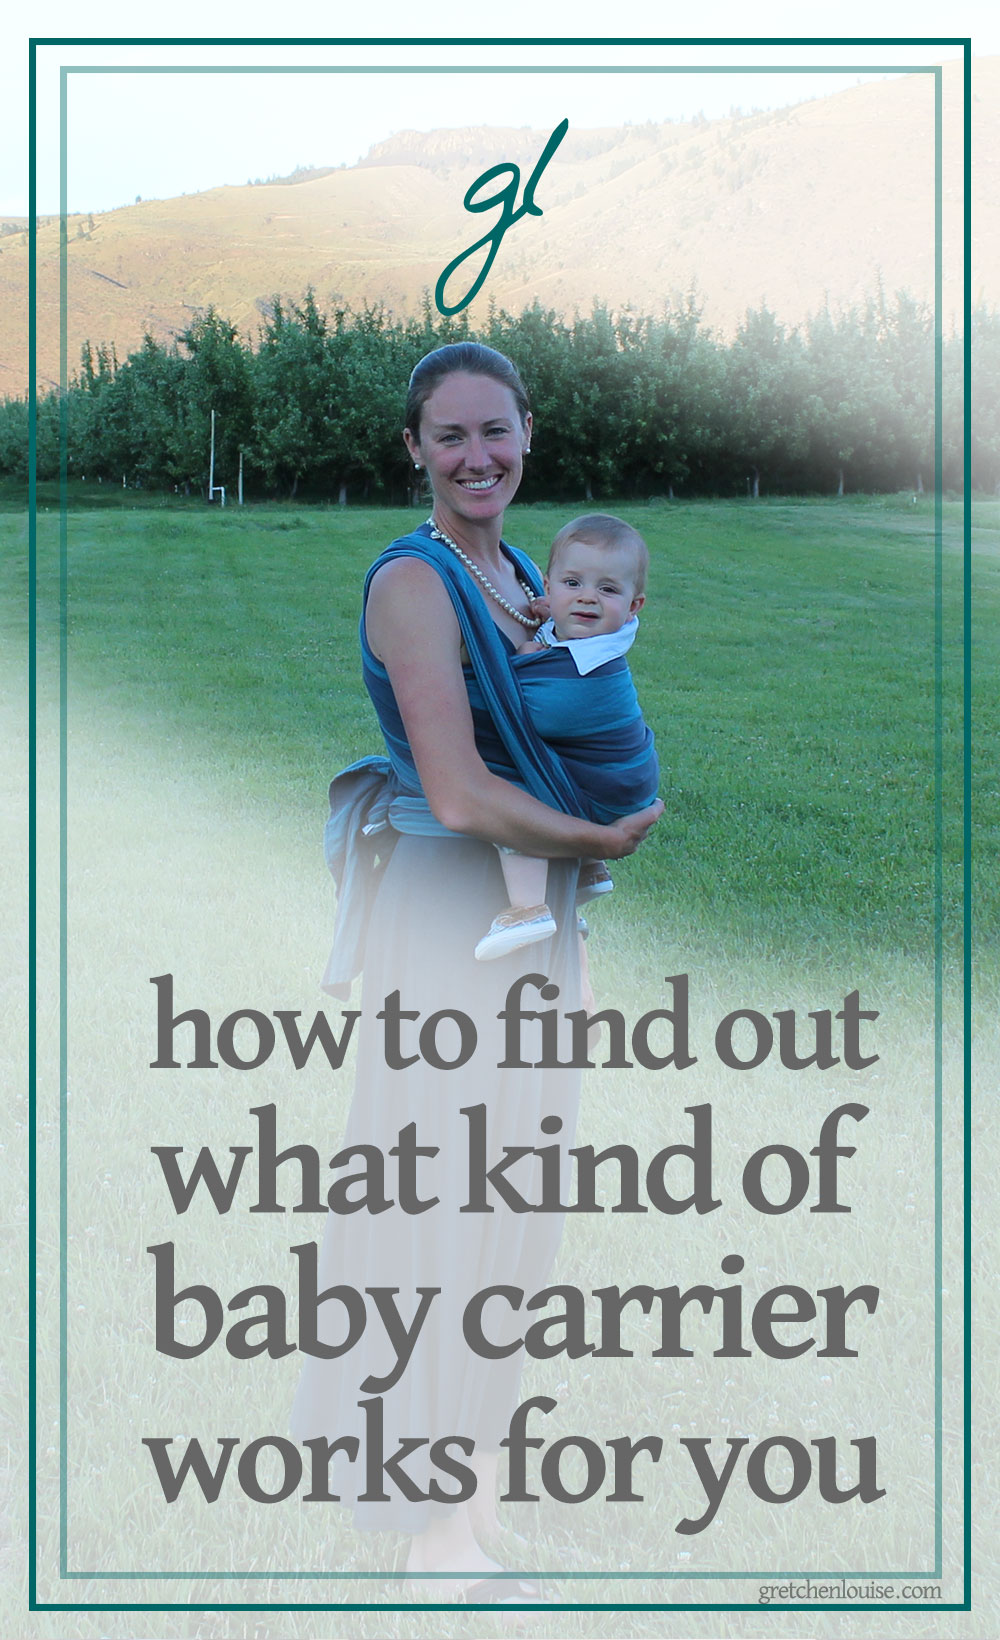 Don't want to invest in babywearing without some first-hand experience? Here are four ways to find out what kind of carrier is best for you and your baby. via @GretLouise